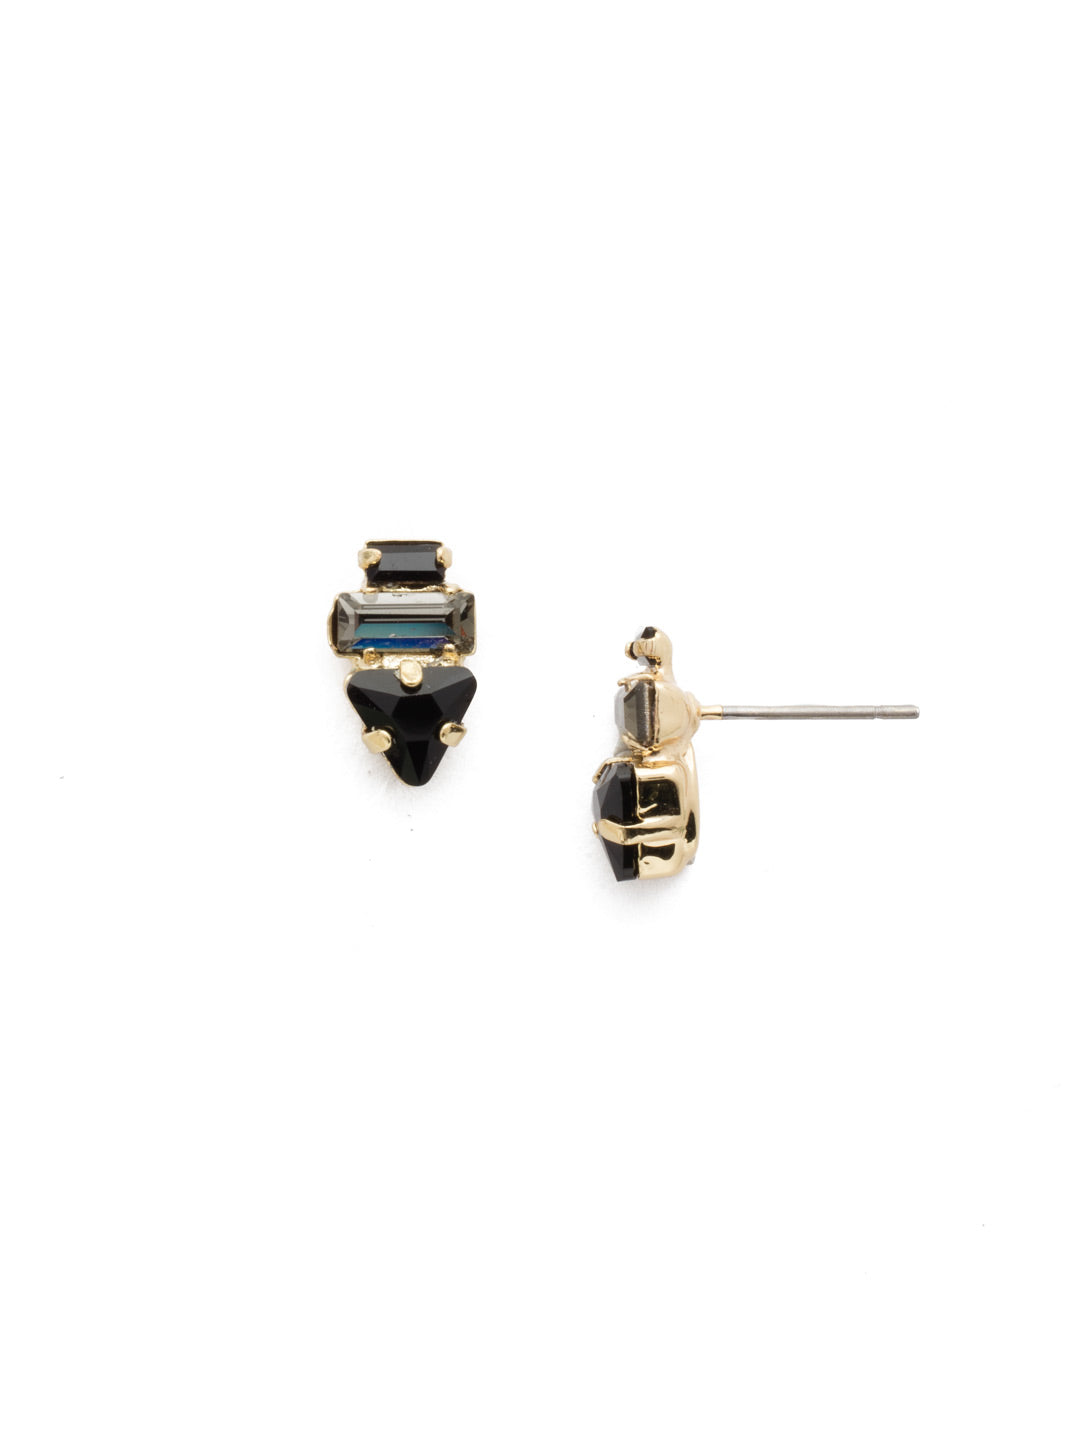 Triple Stack Stud Earrings - EDN104BGJET